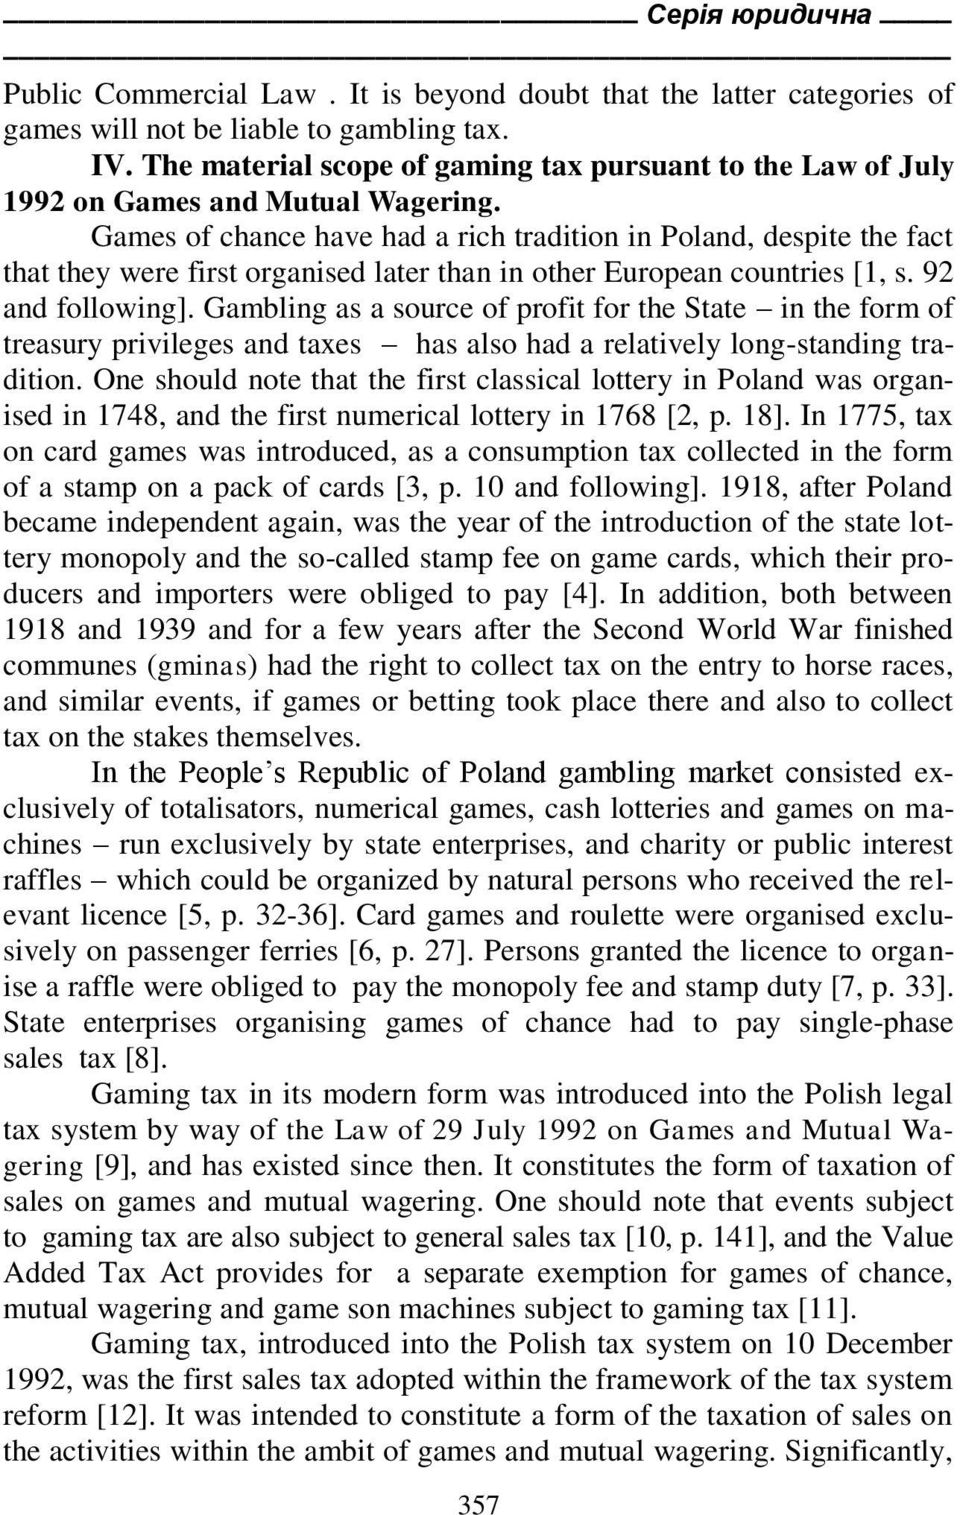 Games of chance have had a rich tradition in Poland, despite the fact that they were first organised later than in other European countries [1, s. 92 and following].